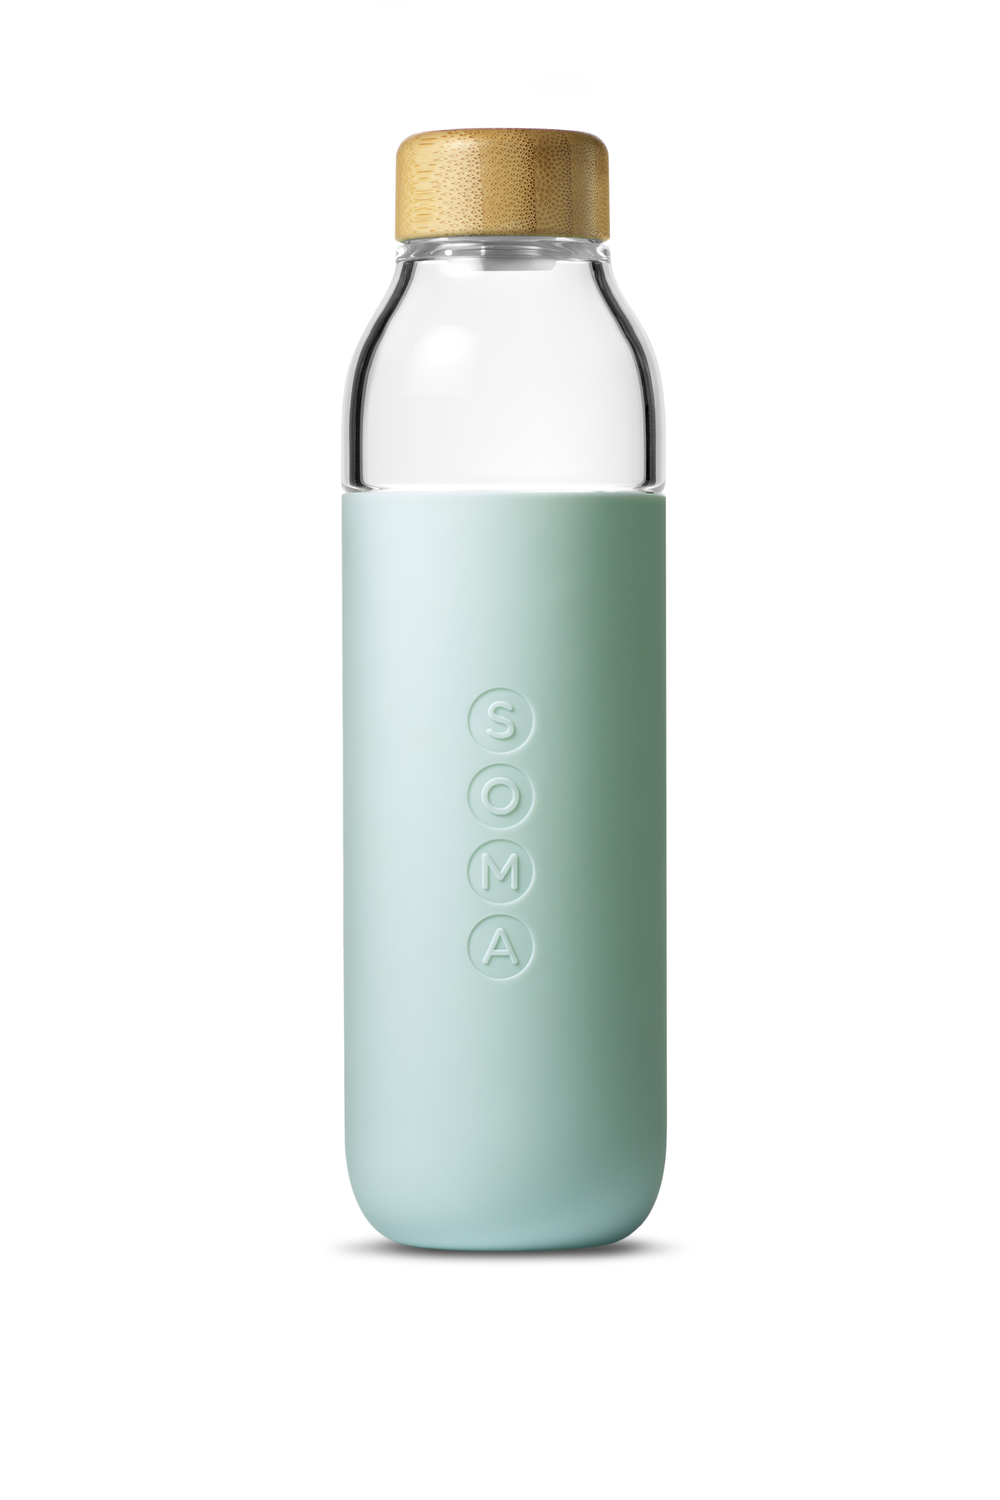 Soma Glass Water Bottle — The Dieline